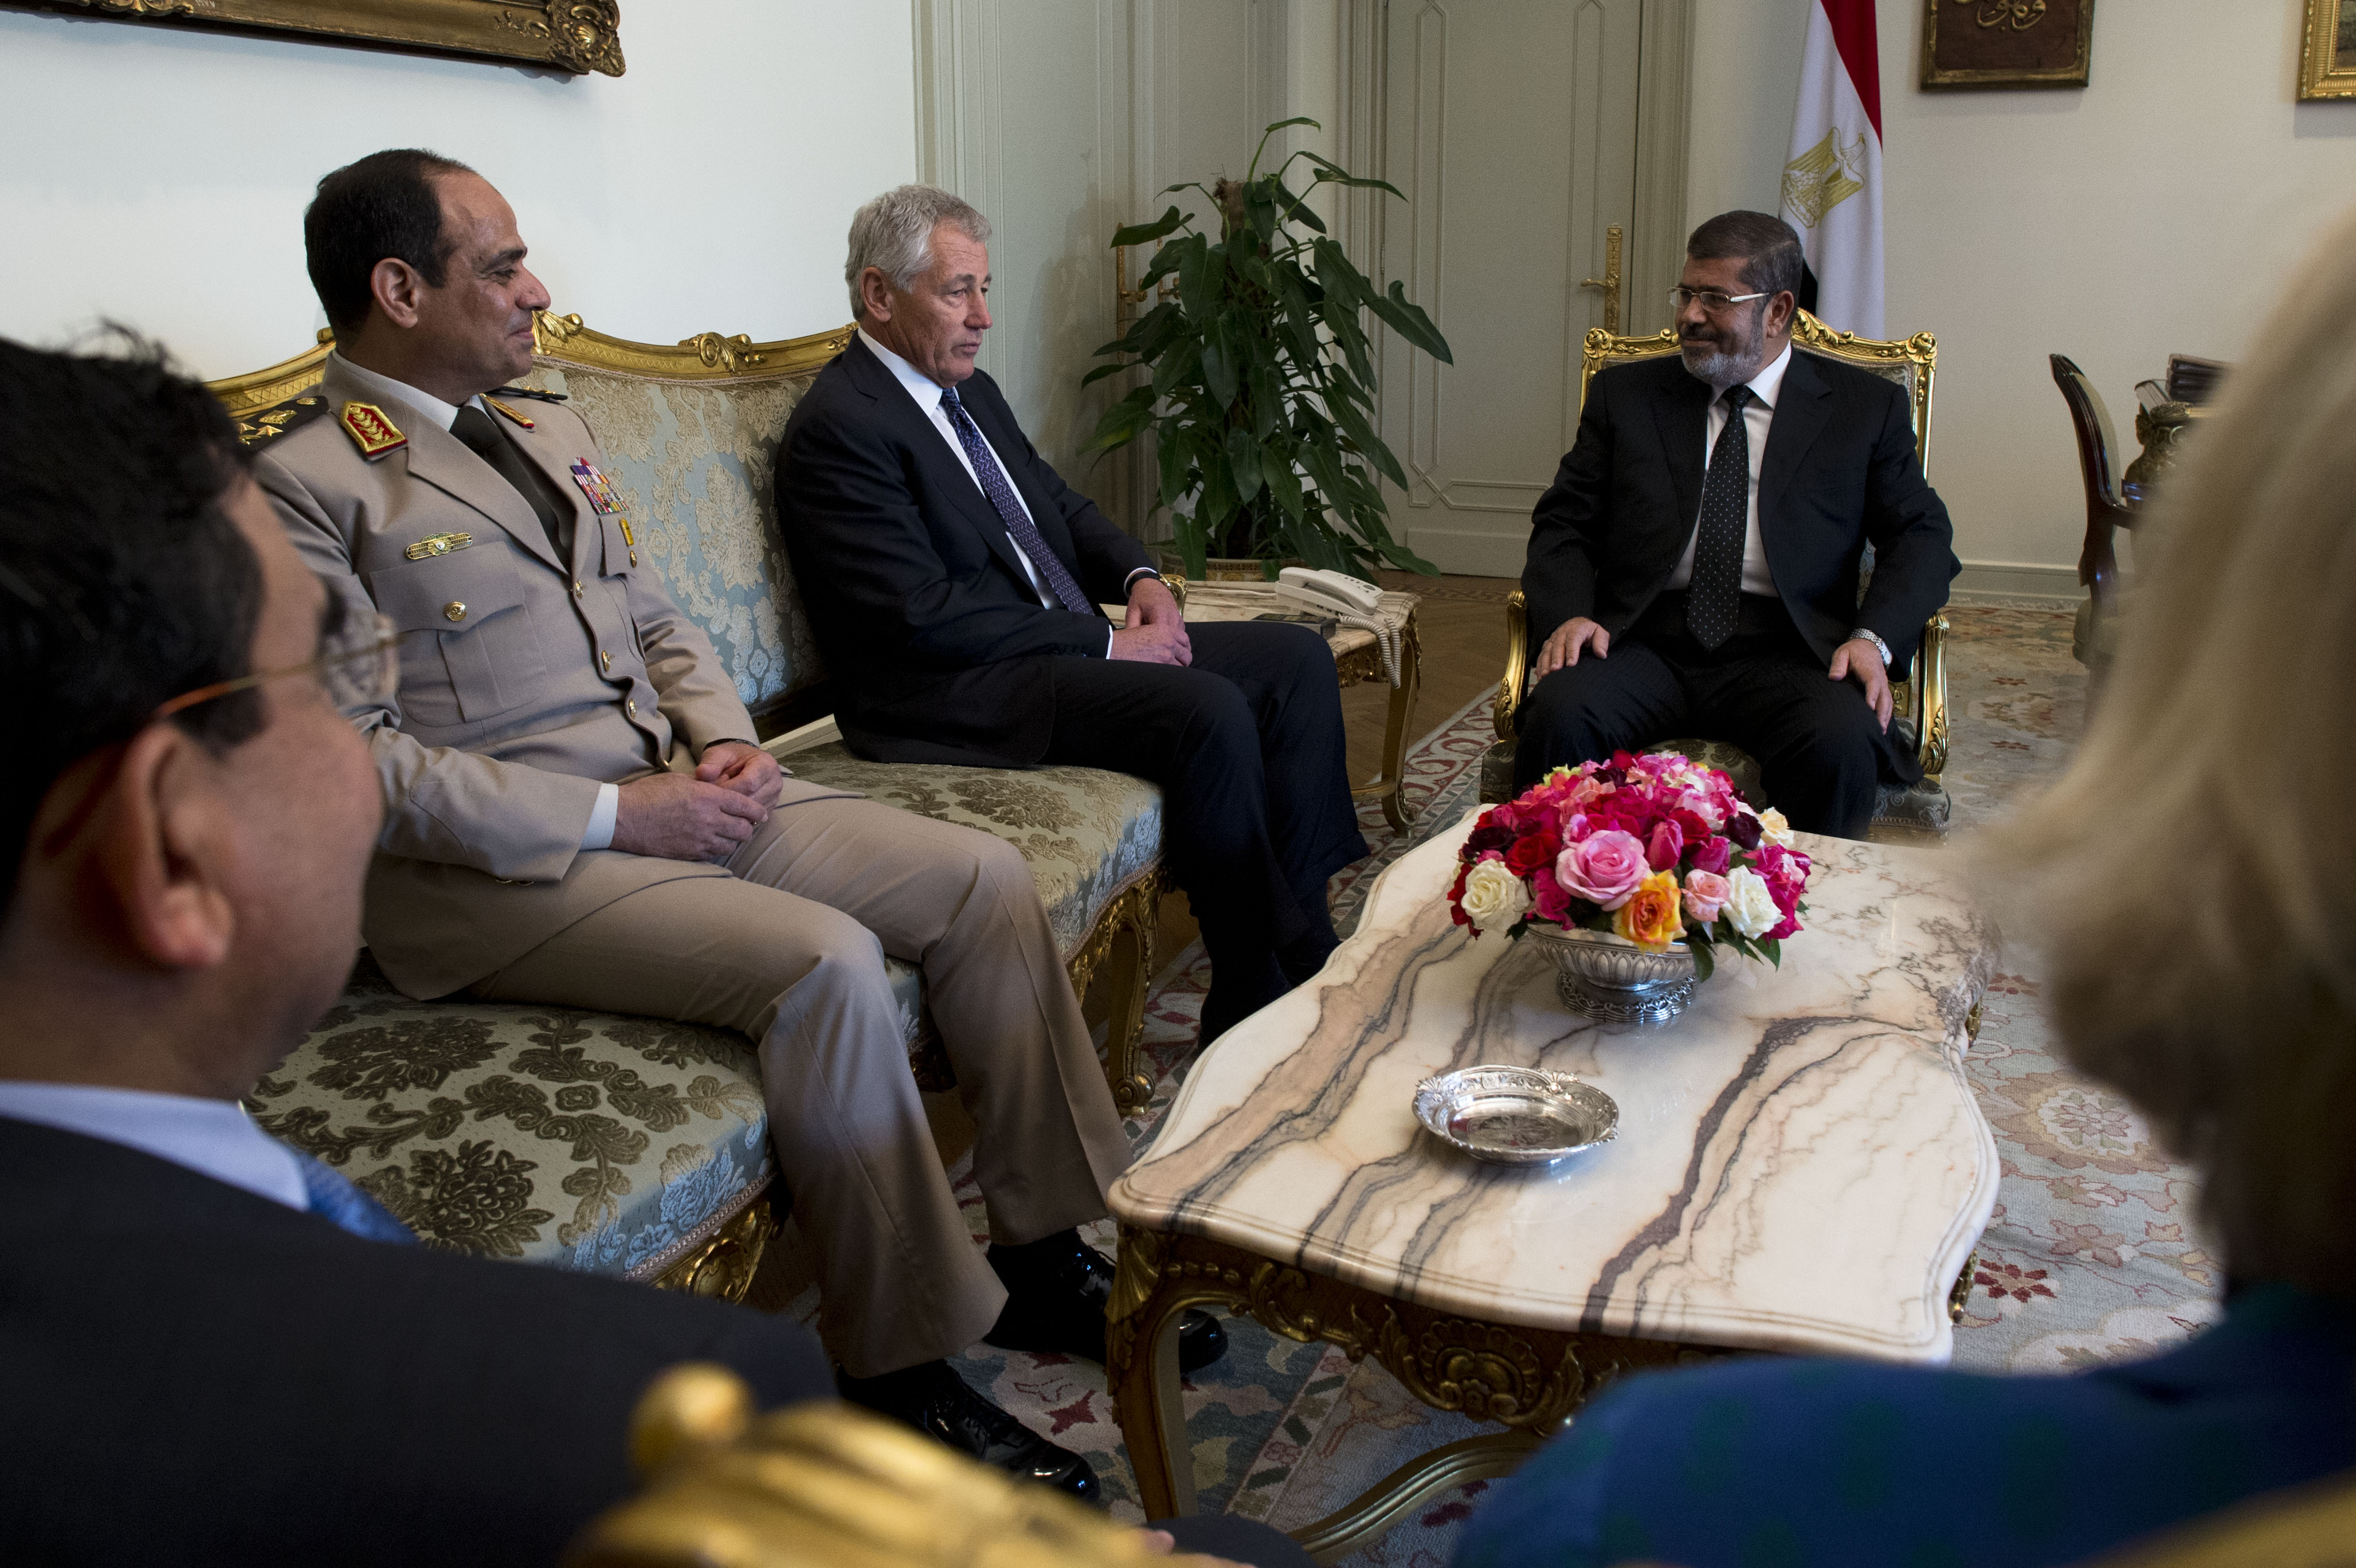 Ephemeral alliance: Then-US Defence Secretary Chuck Hagel meets with then-President of Egypt Muhammad Morsi and General Sisi, who would lead a coup in 2013. Image: Erin A. Kirk-Cuomo